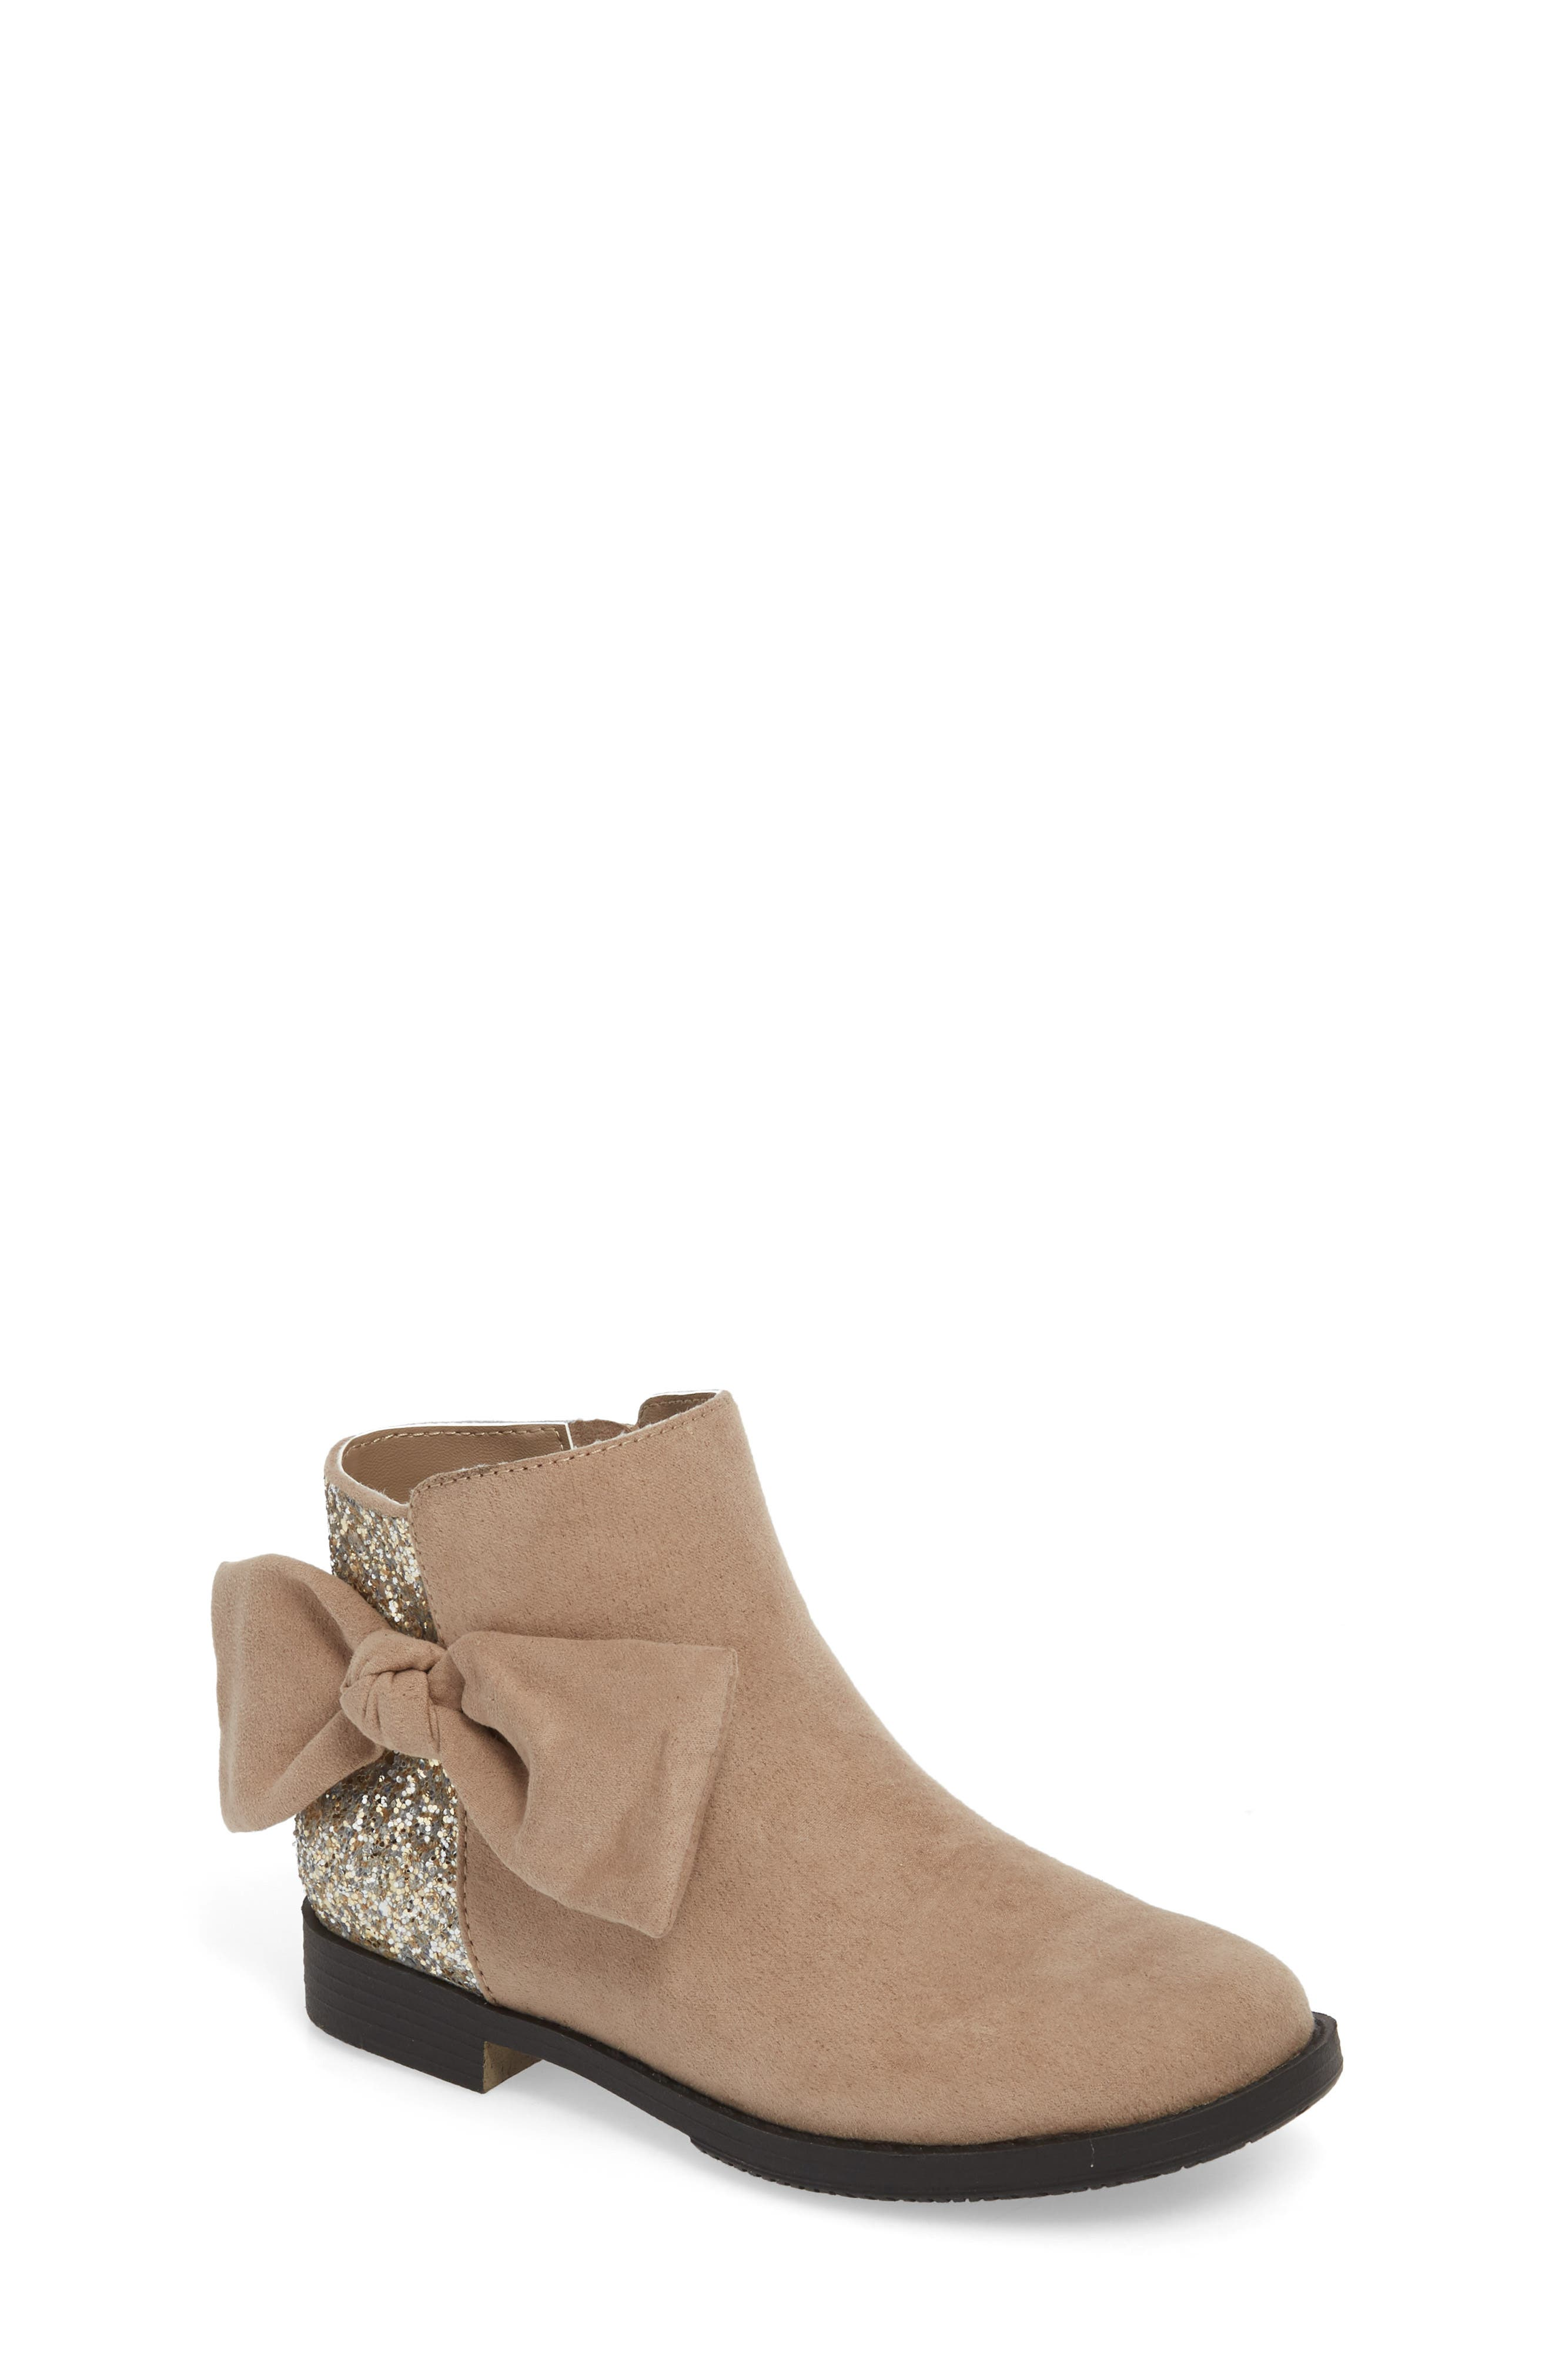 Glittery Kennedy Tie Bootie,                             Main thumbnail 1, color,                             TAUPE